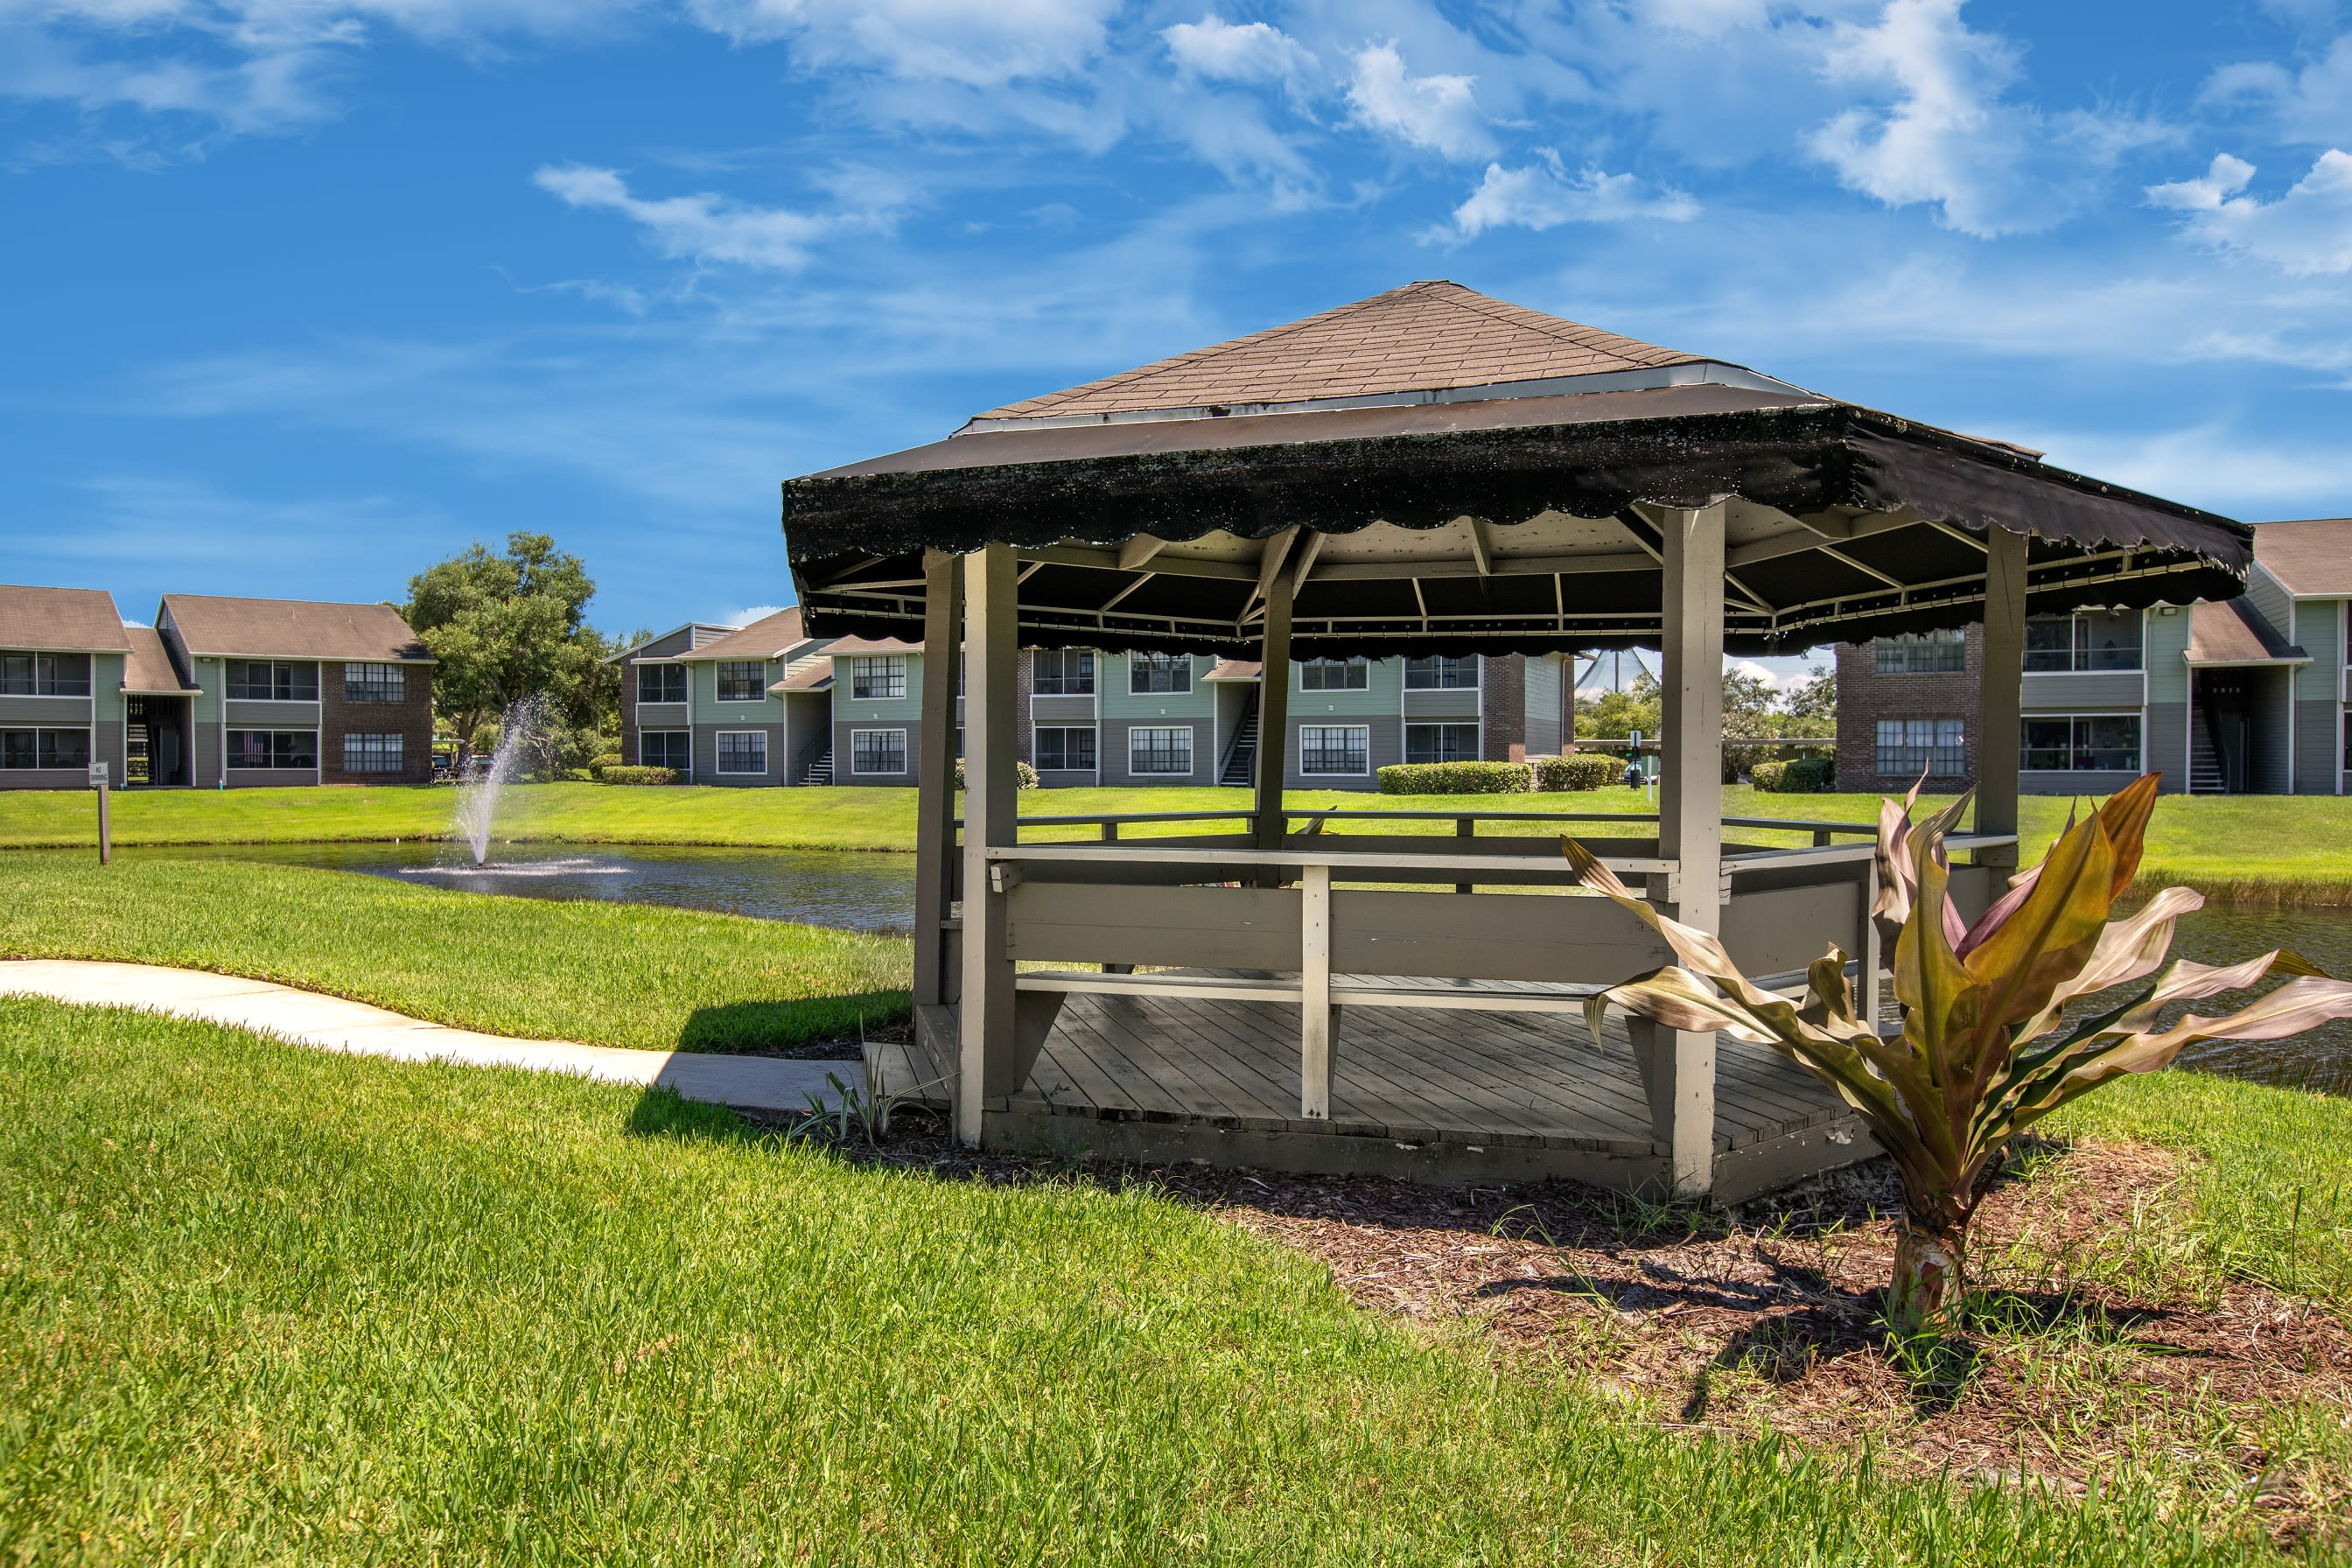 Community gazebo at Compass in Melbourne, Florida